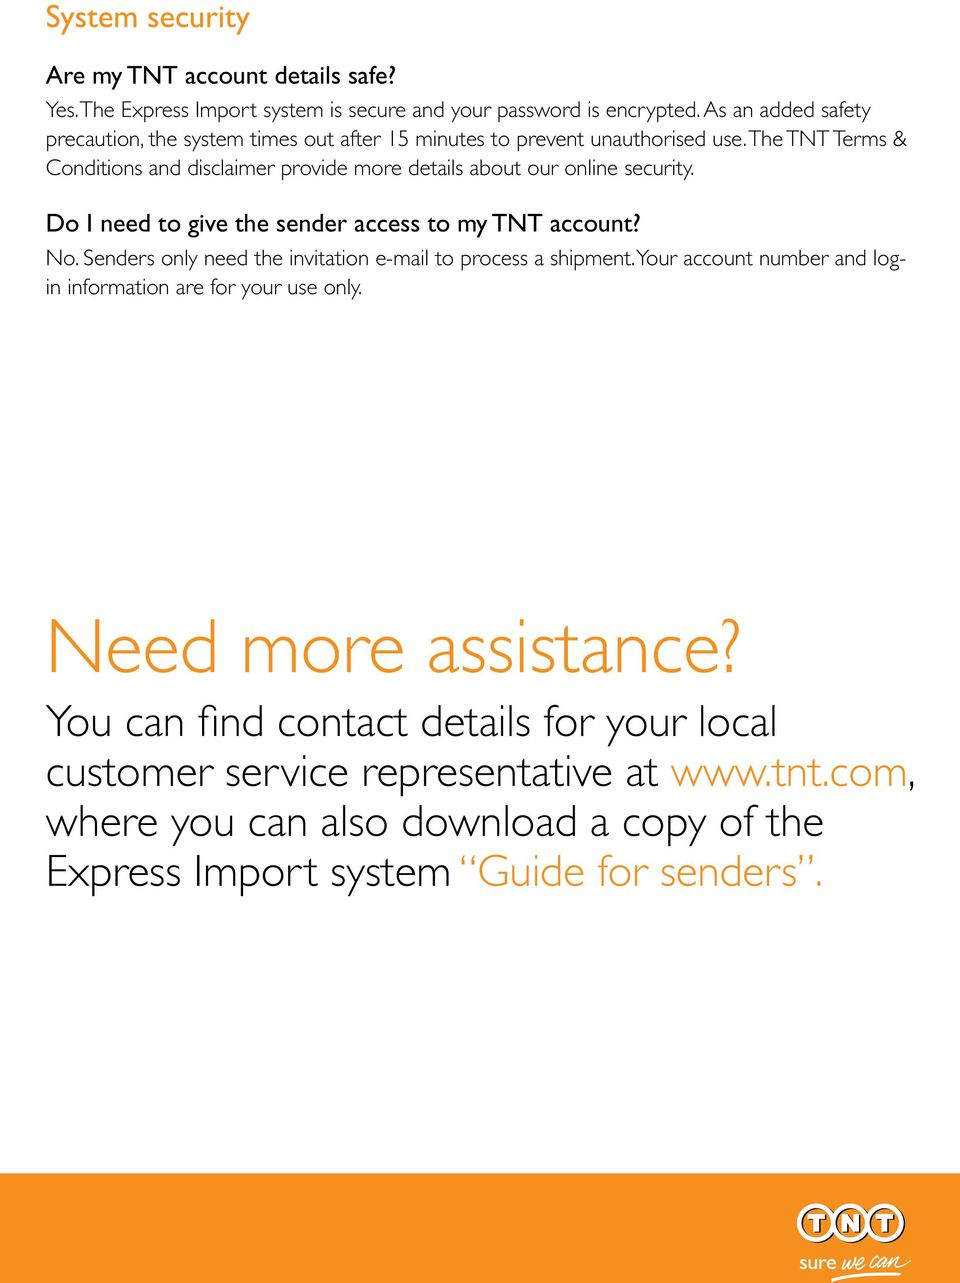 The TNT Terms & Conditions and disclaimer provide more details about our online security. Do I need to give the sender access to my TNT account? No.